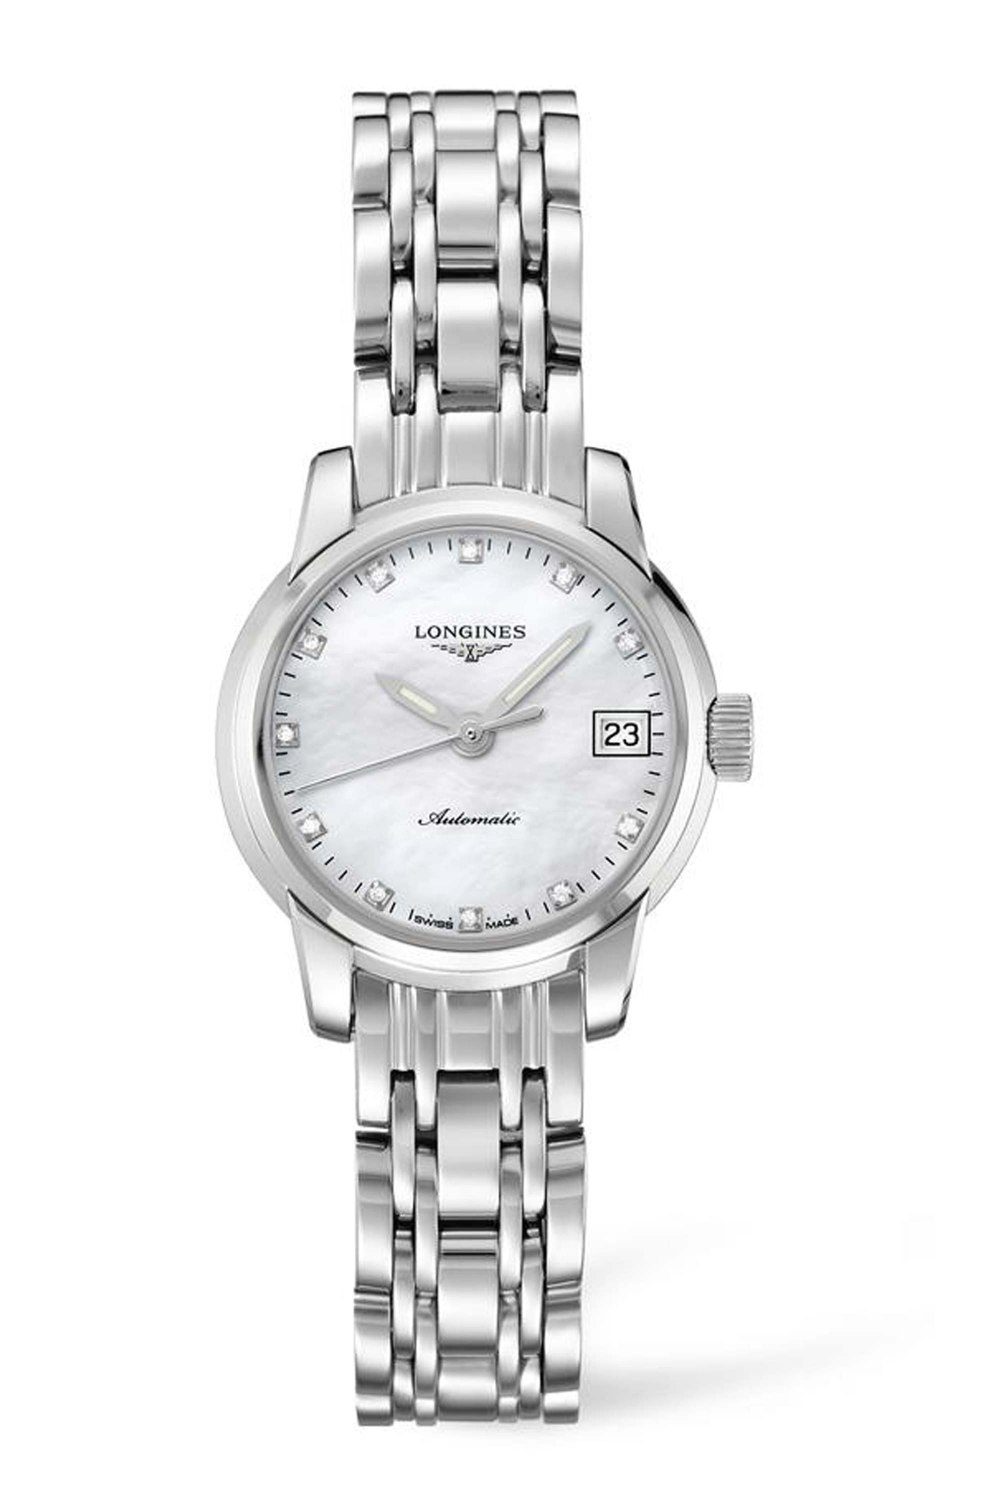 LONGINES The Longines Saint-Imier Collection L2.263.4.87.6